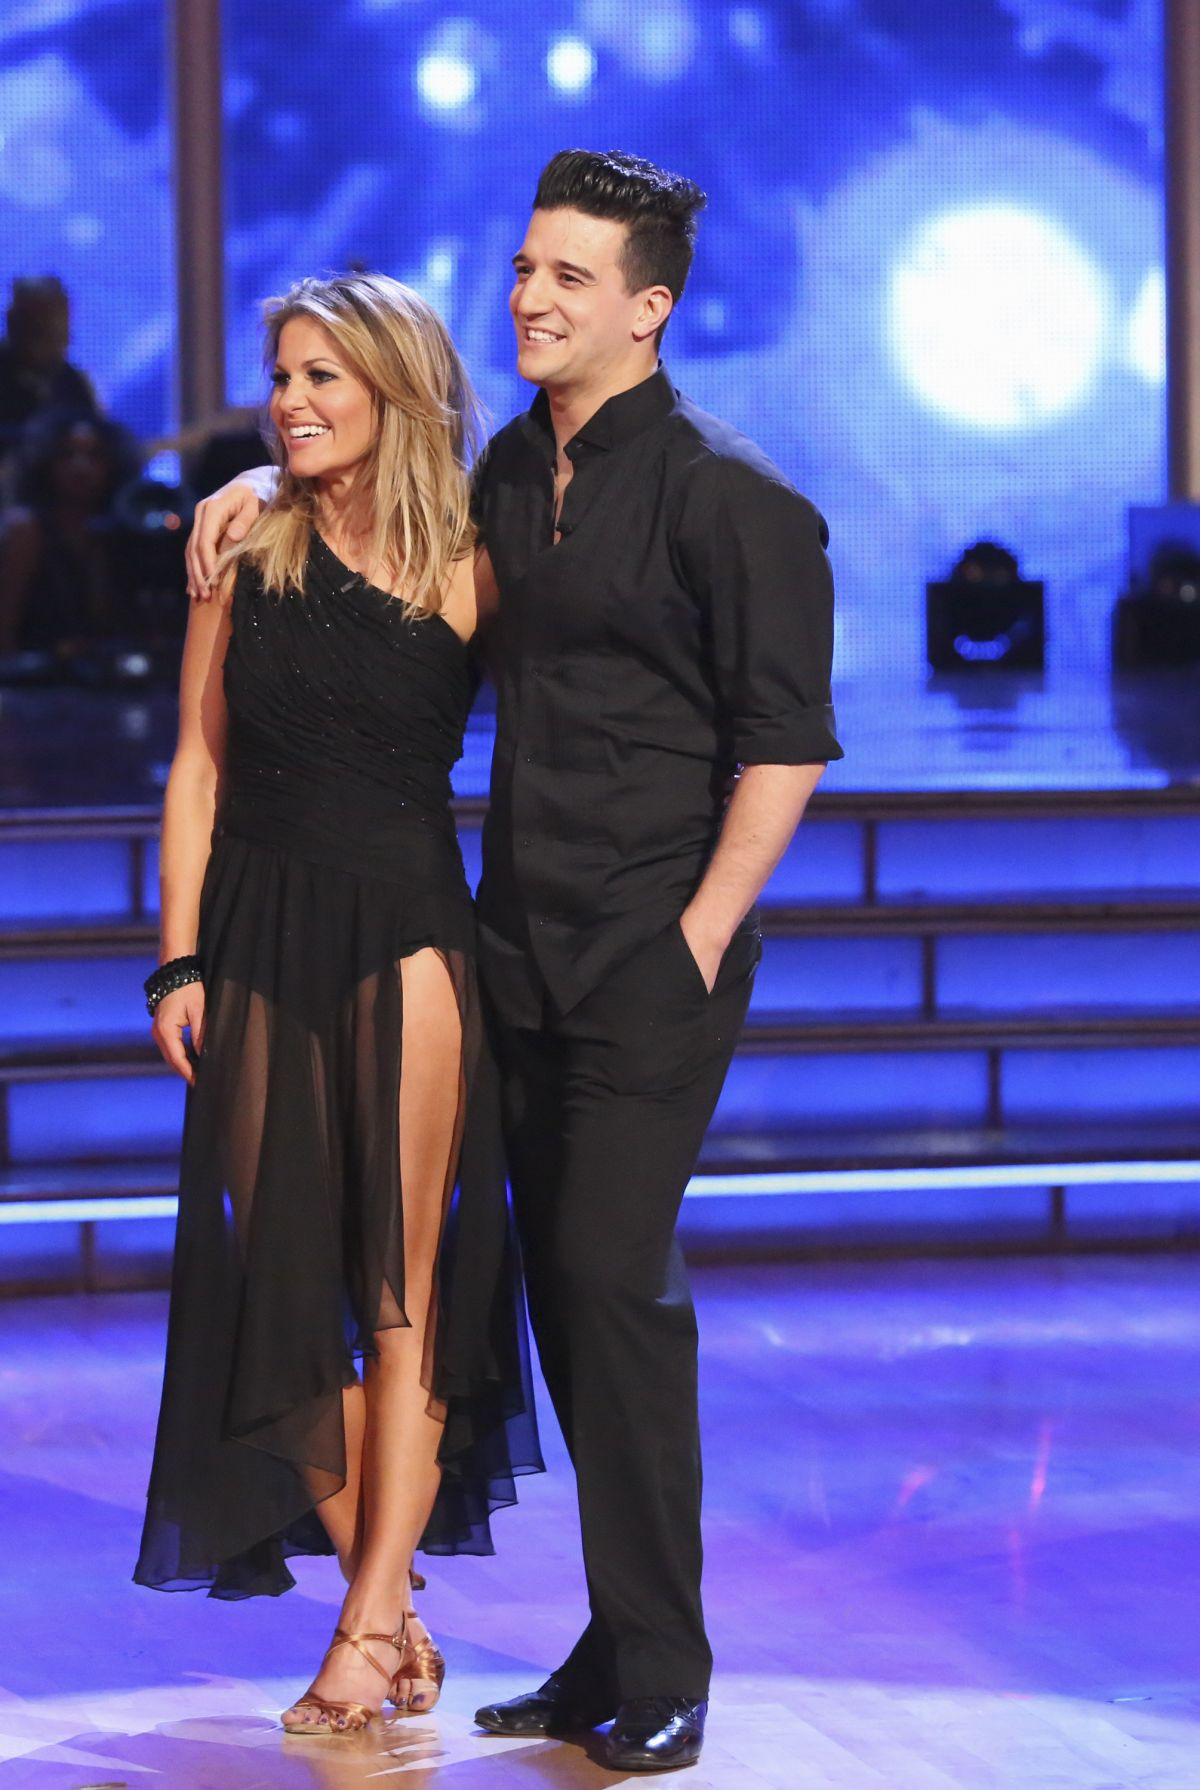 Candace Cameron dancing with the stars week 1